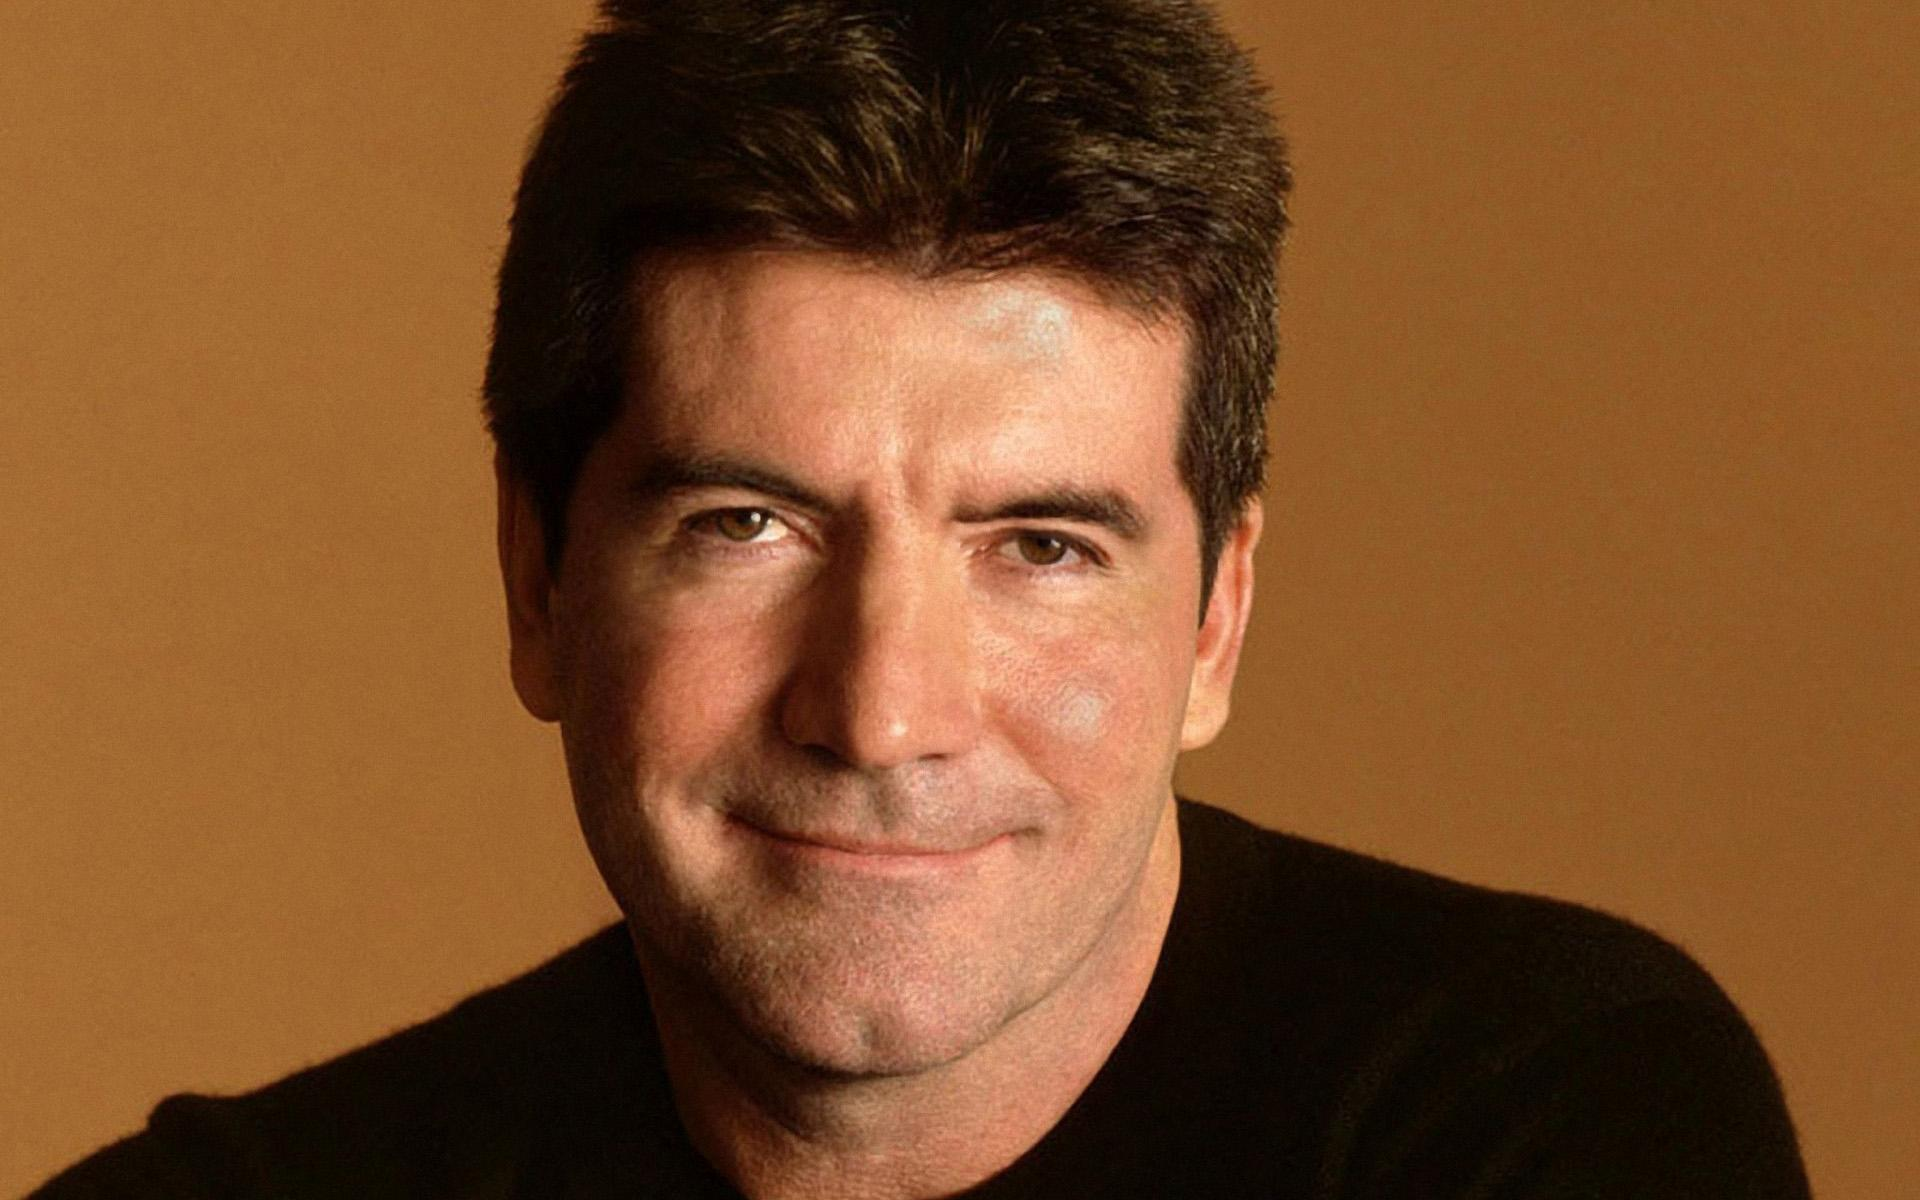 simon cowell american idol wallpaper – 1920 x 1200 pixels – 187 kB